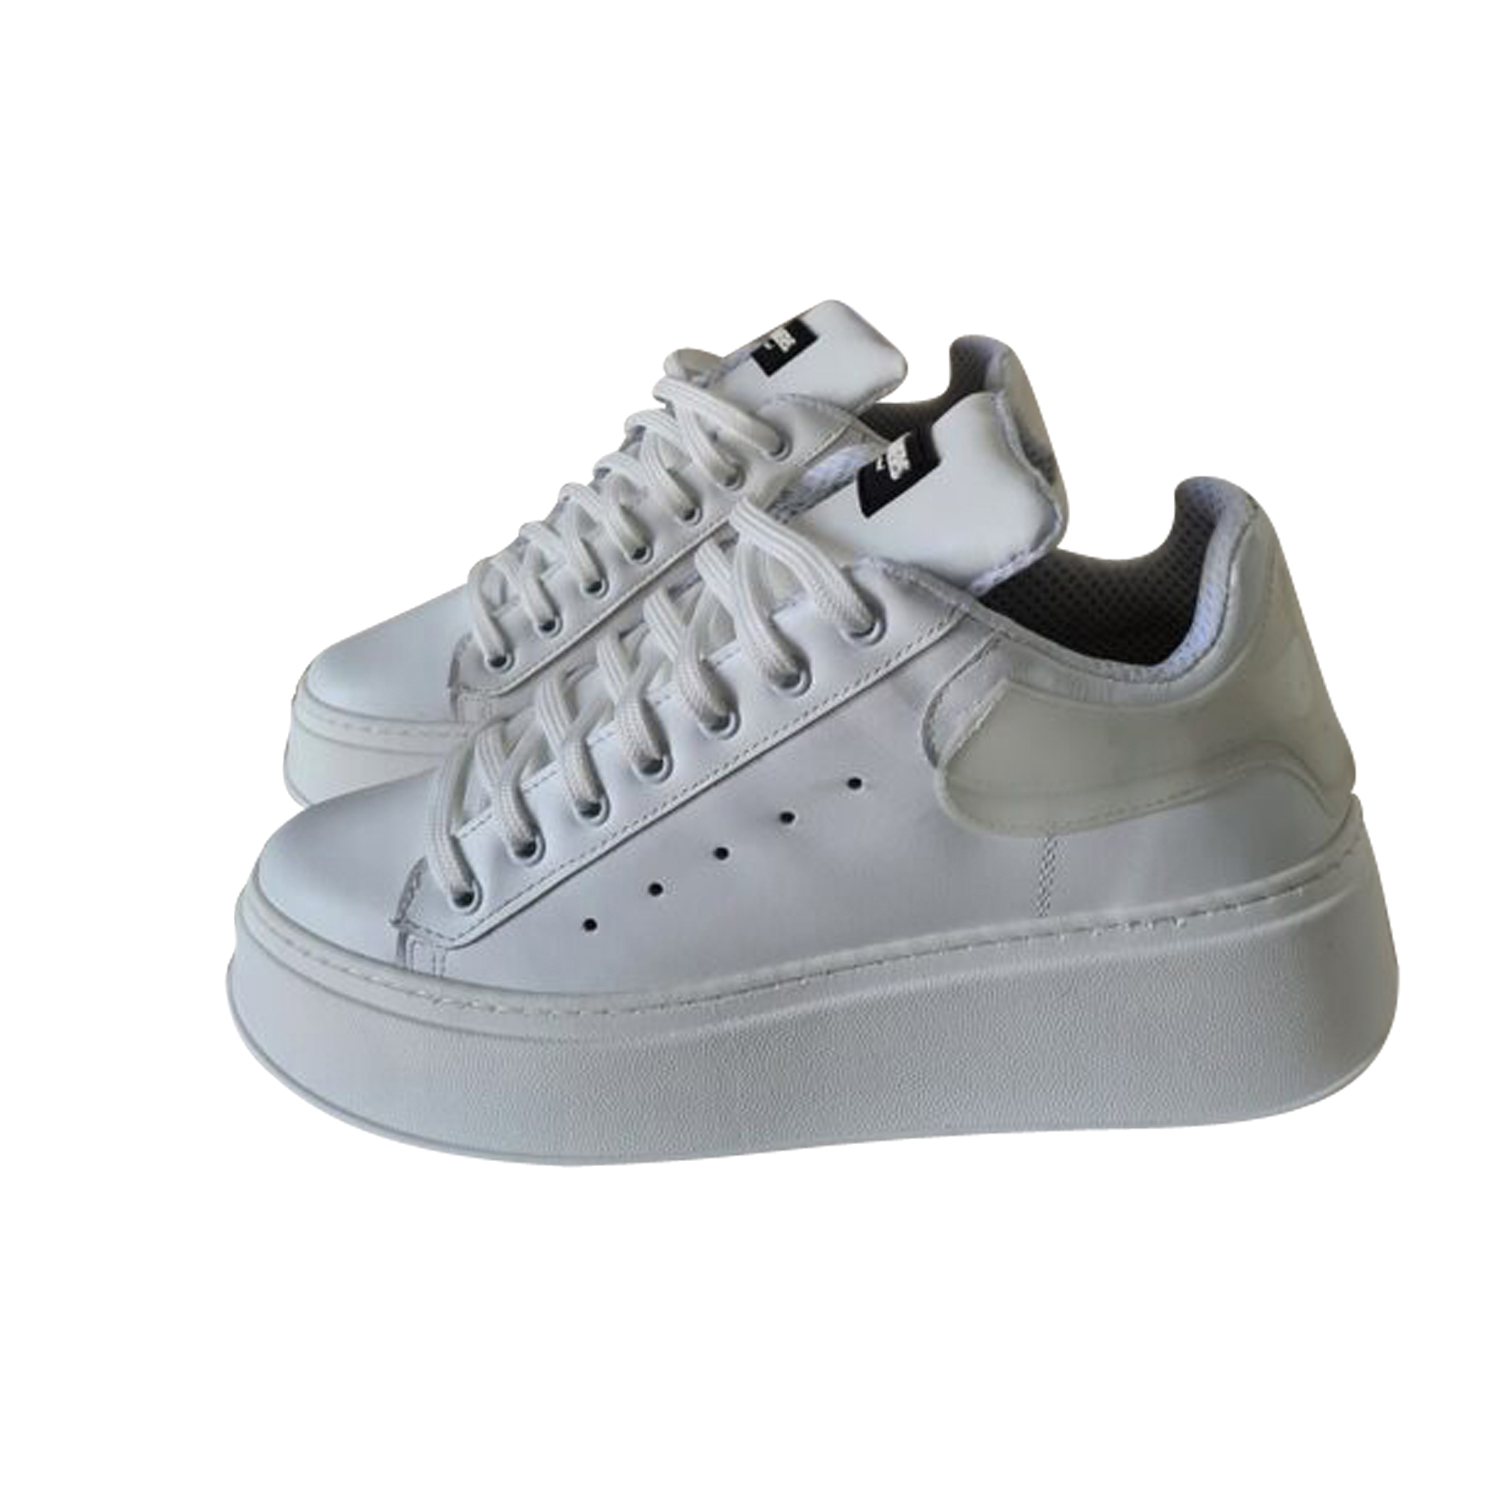 JAMMERS LONDON SNEAKERS TOTAL BIANCO